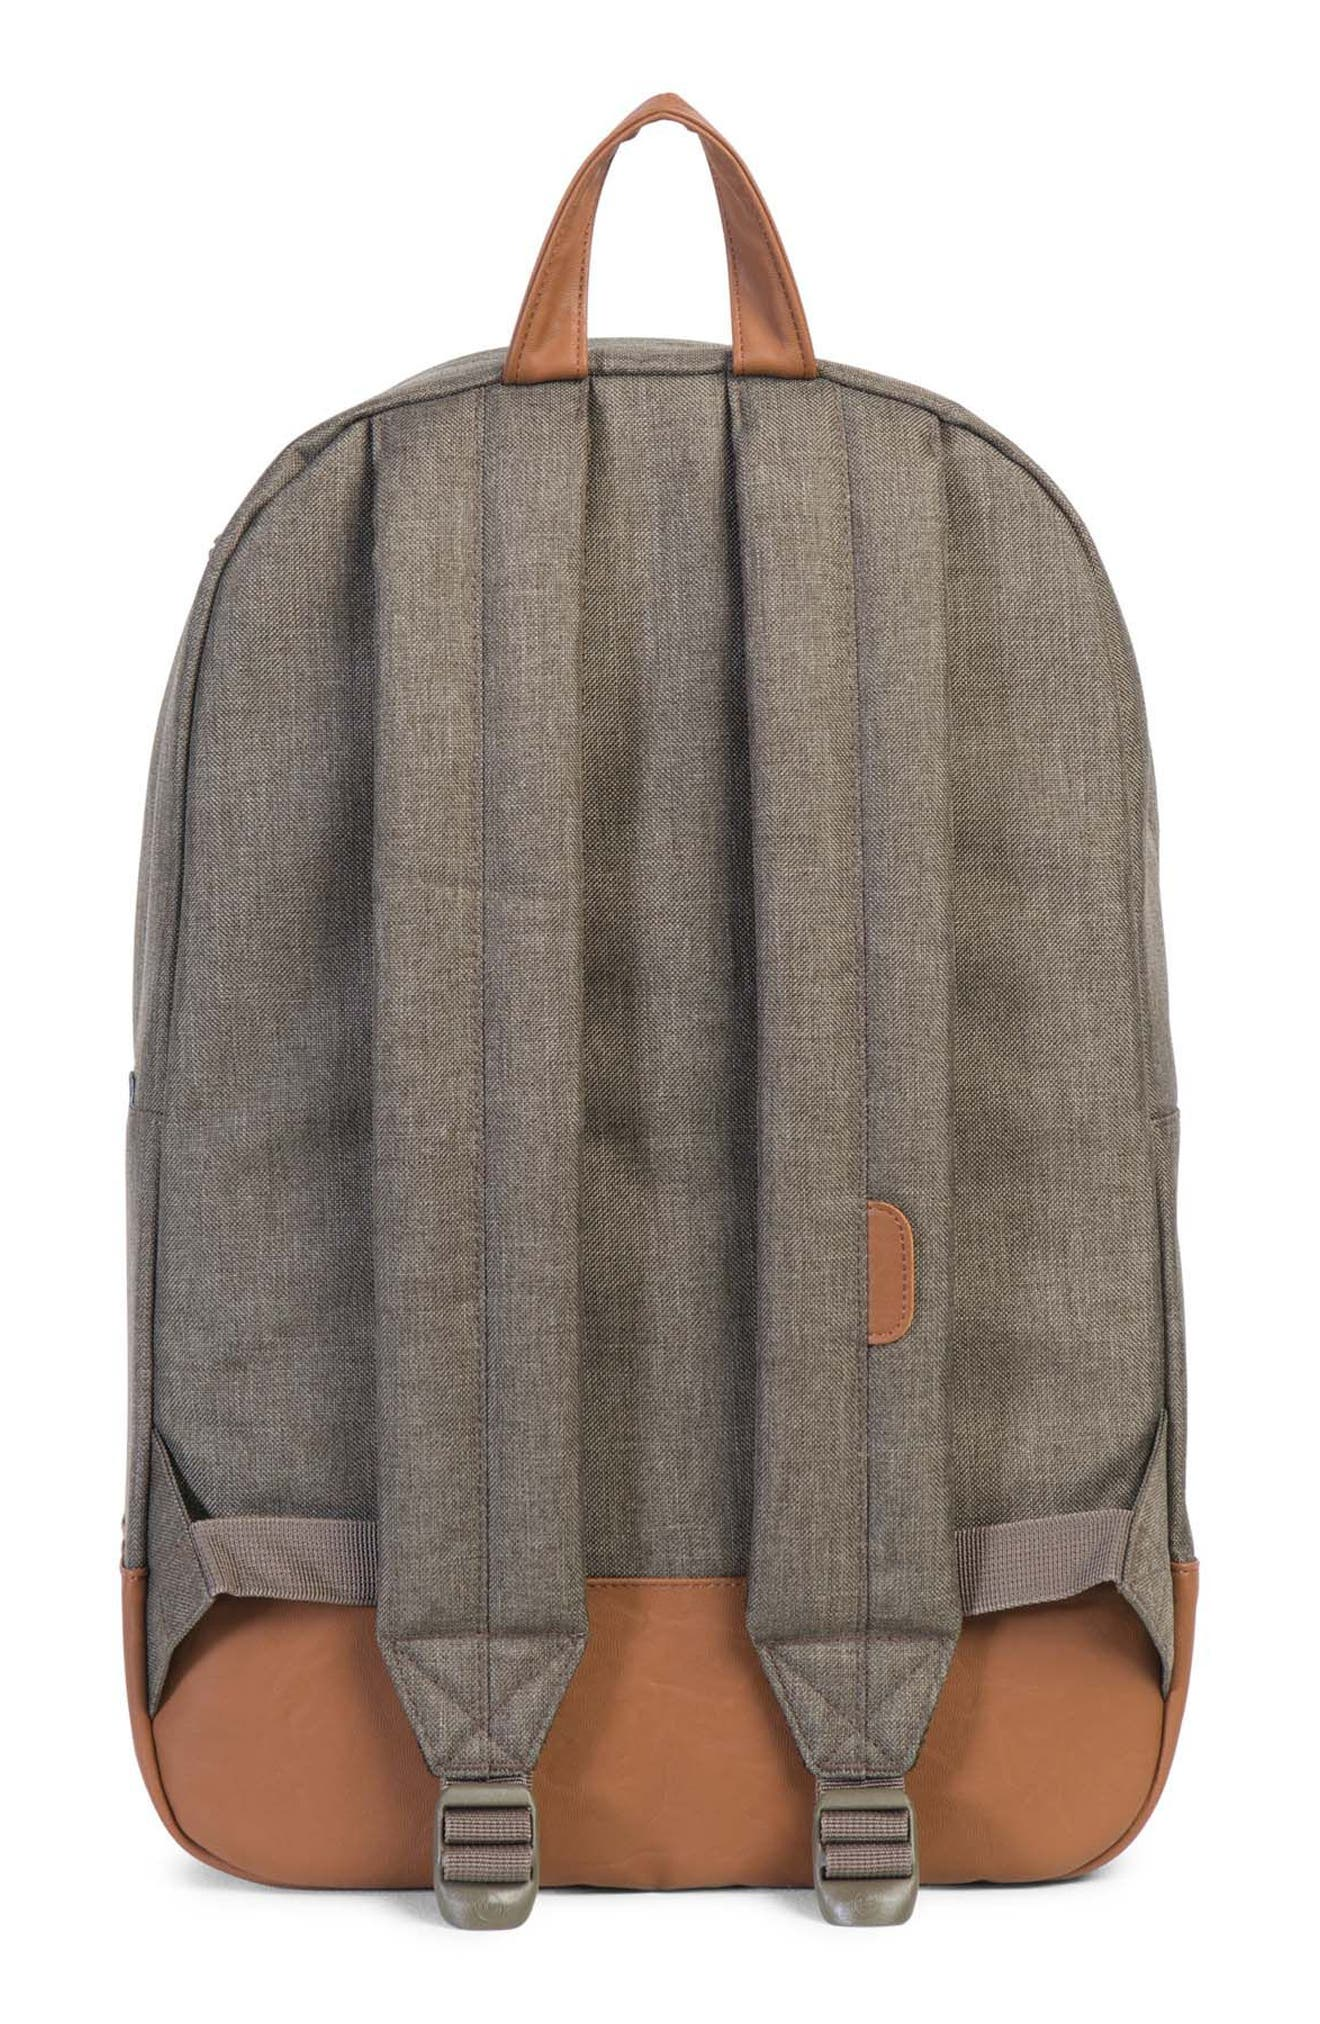 Heritage Backpack,                             Alternate thumbnail 2, color,                             Canteen Crosshatch/ Tan